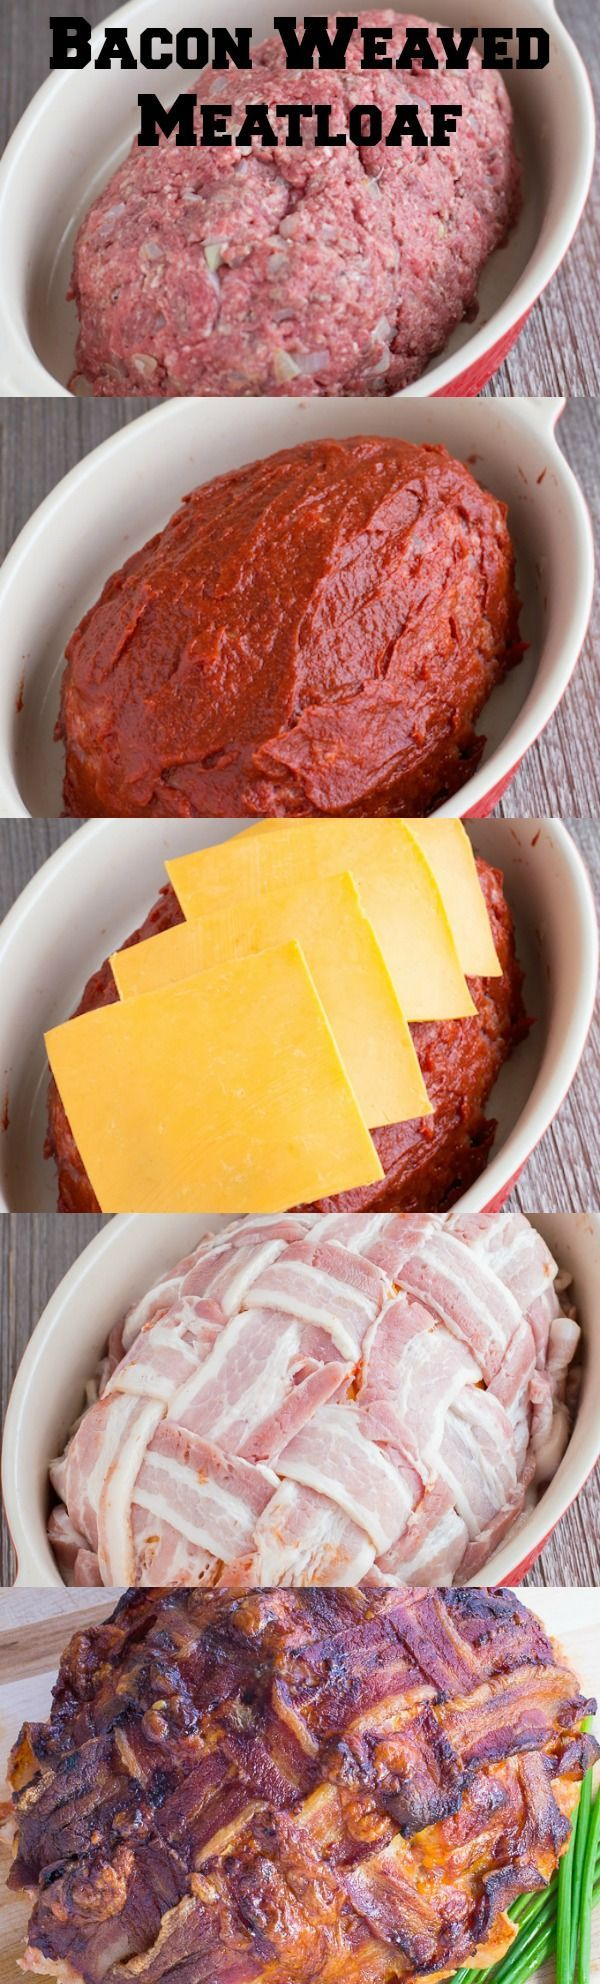 Start with an amazing tasting meatloaf recipe, topped with tomato sauce, cheese and basket weaved bacon.